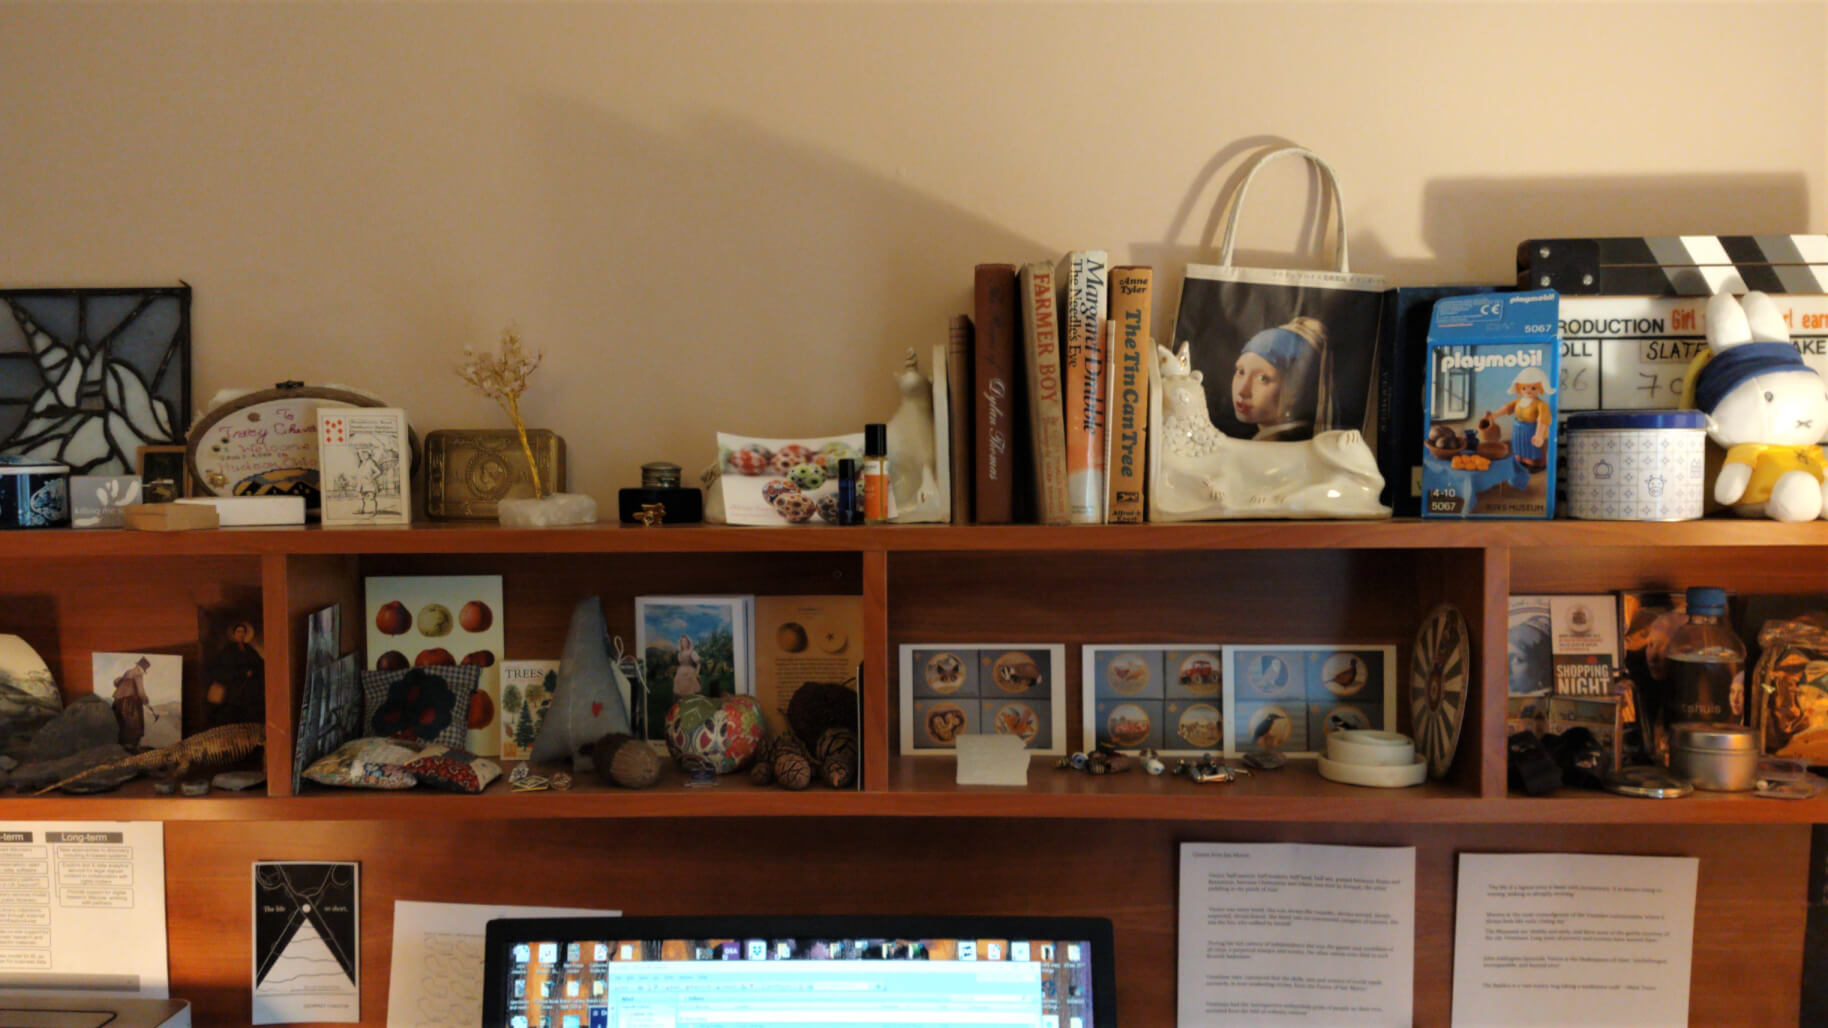 Tracy Chevalier Studio - Girl with a Pearl Earring Memorabilia & Cubby Holes